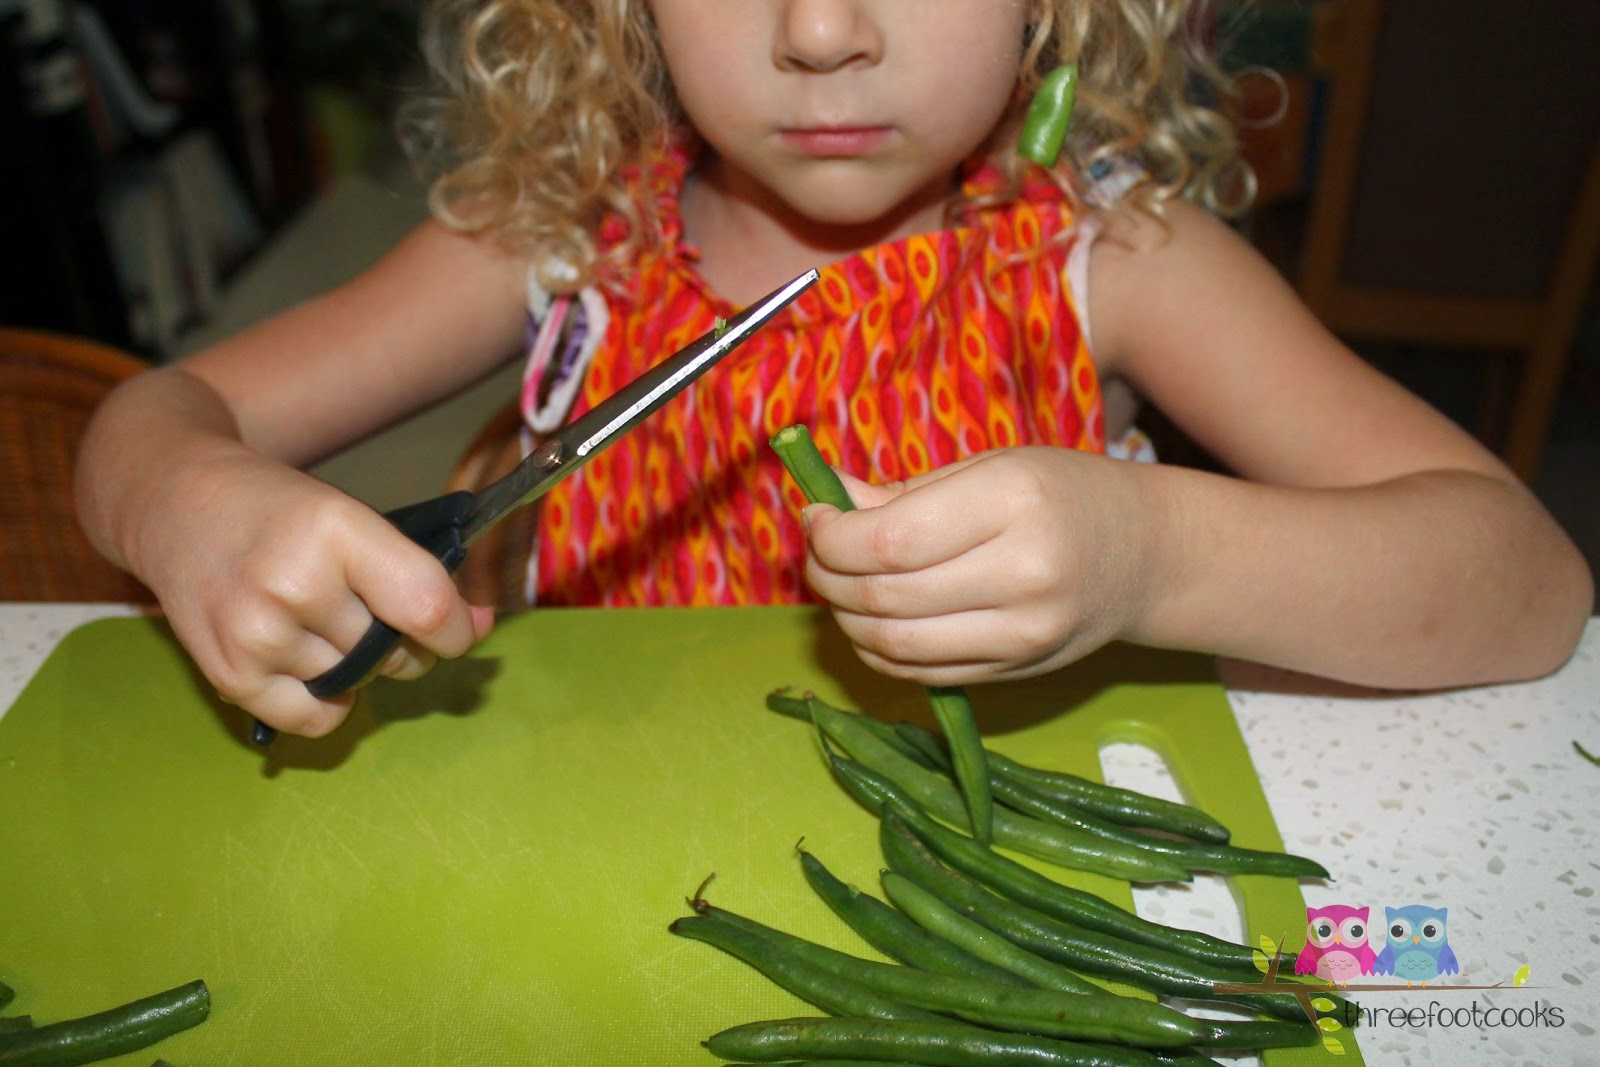 If your child is ready to use them, scissors are great for chopping vegies and herbs